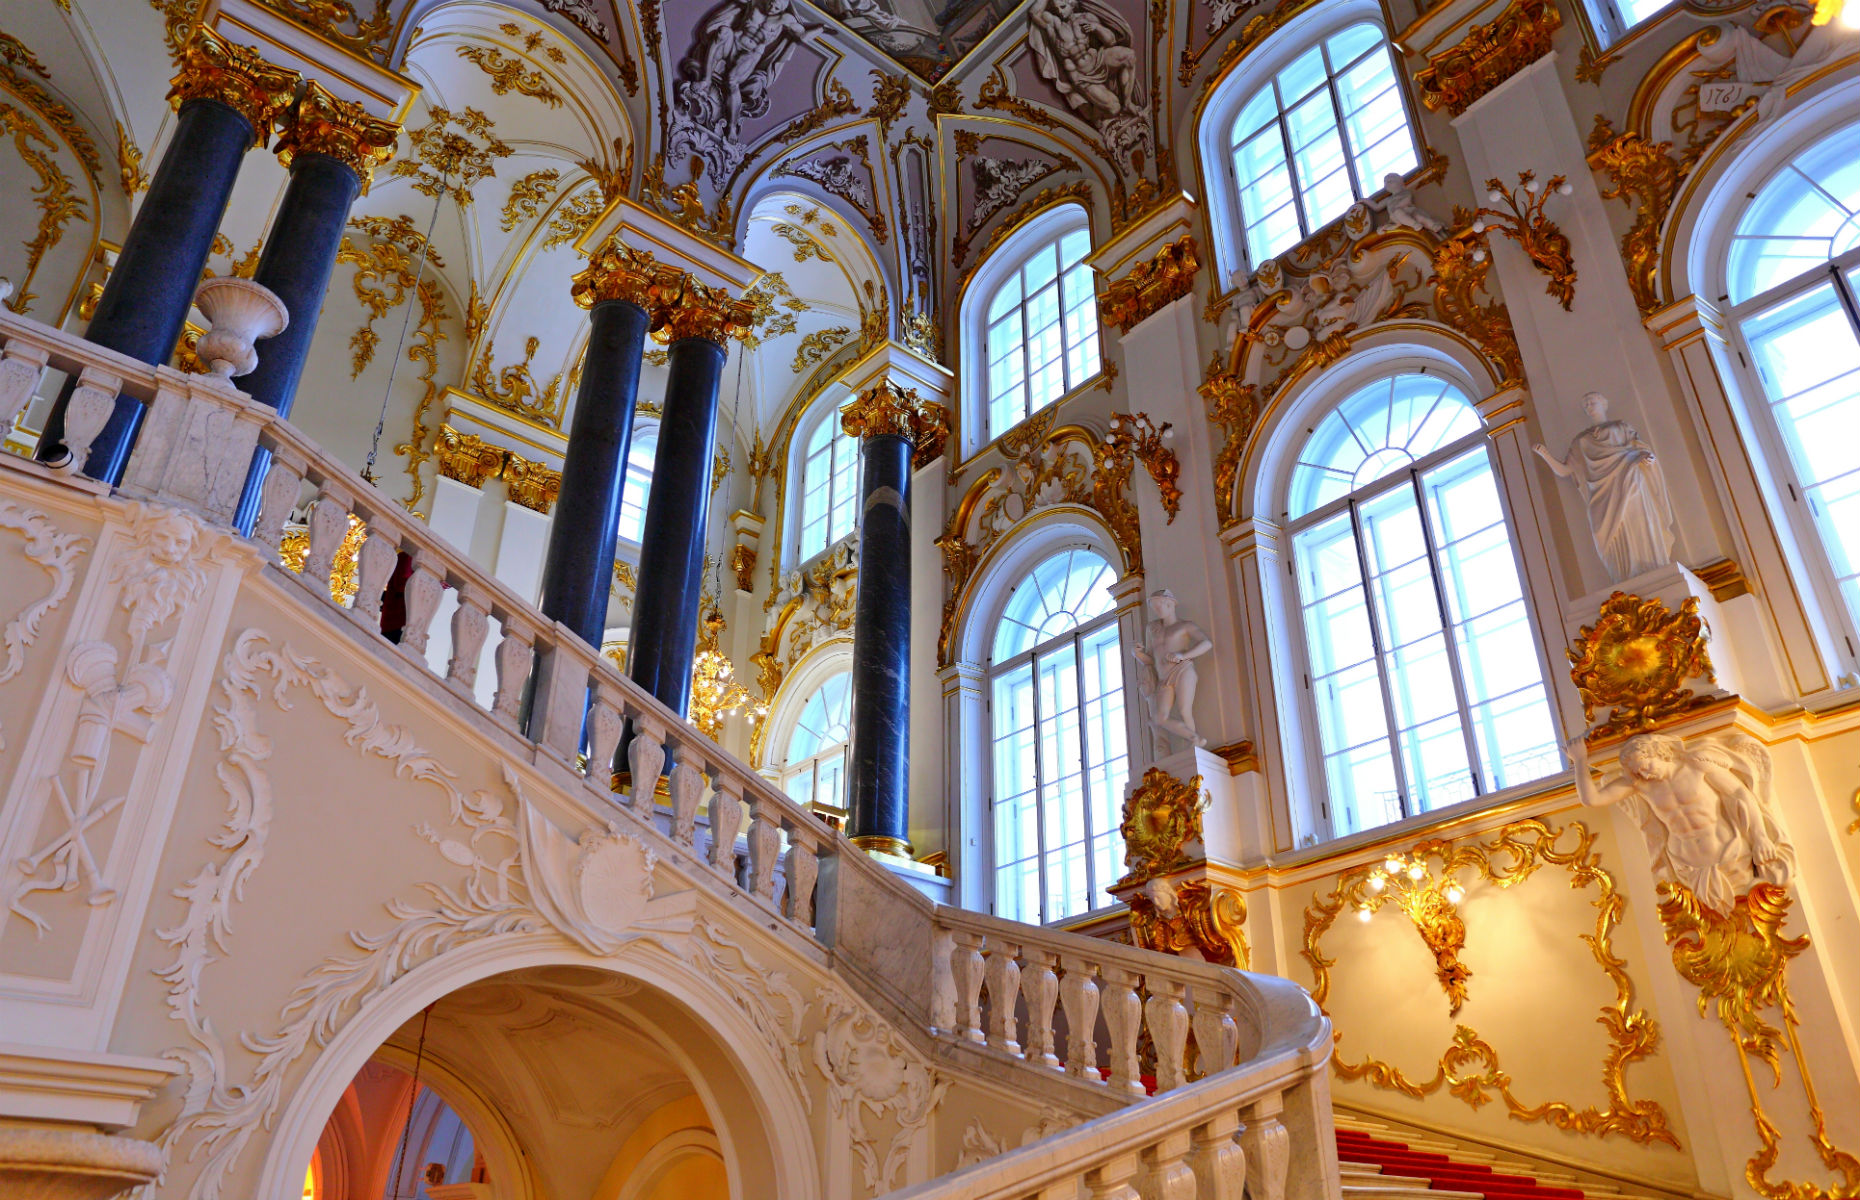 Main staircase in State Hermitage Museum (Image: LEOCHEN66/Shutterstock)